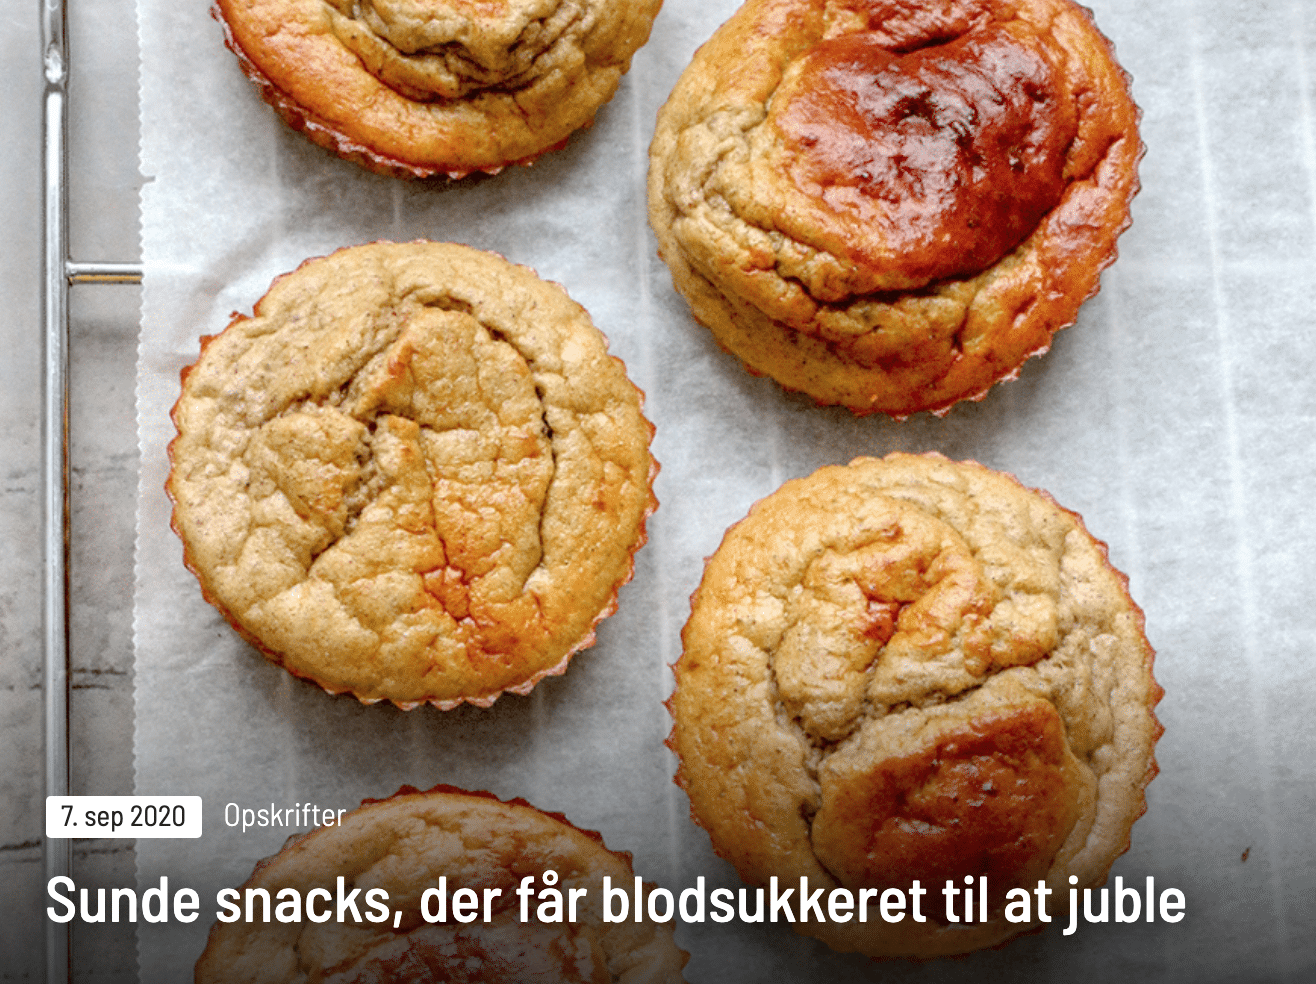 Sunde snacks der får blodsukkeret til at juble